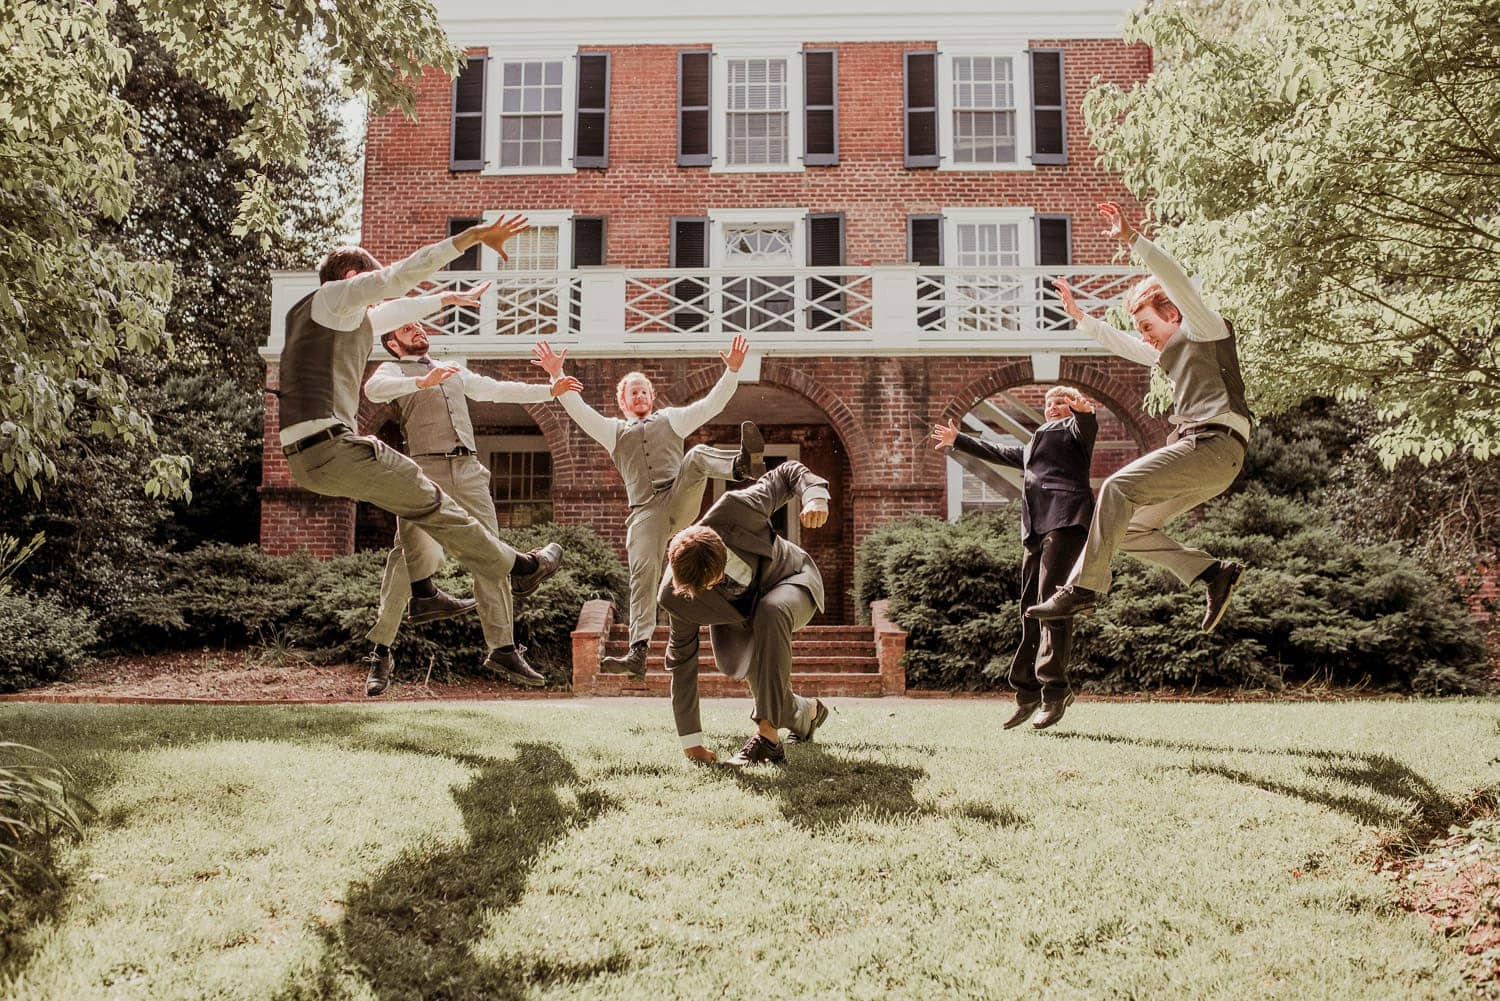 The groom appears to be punching the ground. His groomsmen are jumping in the air.